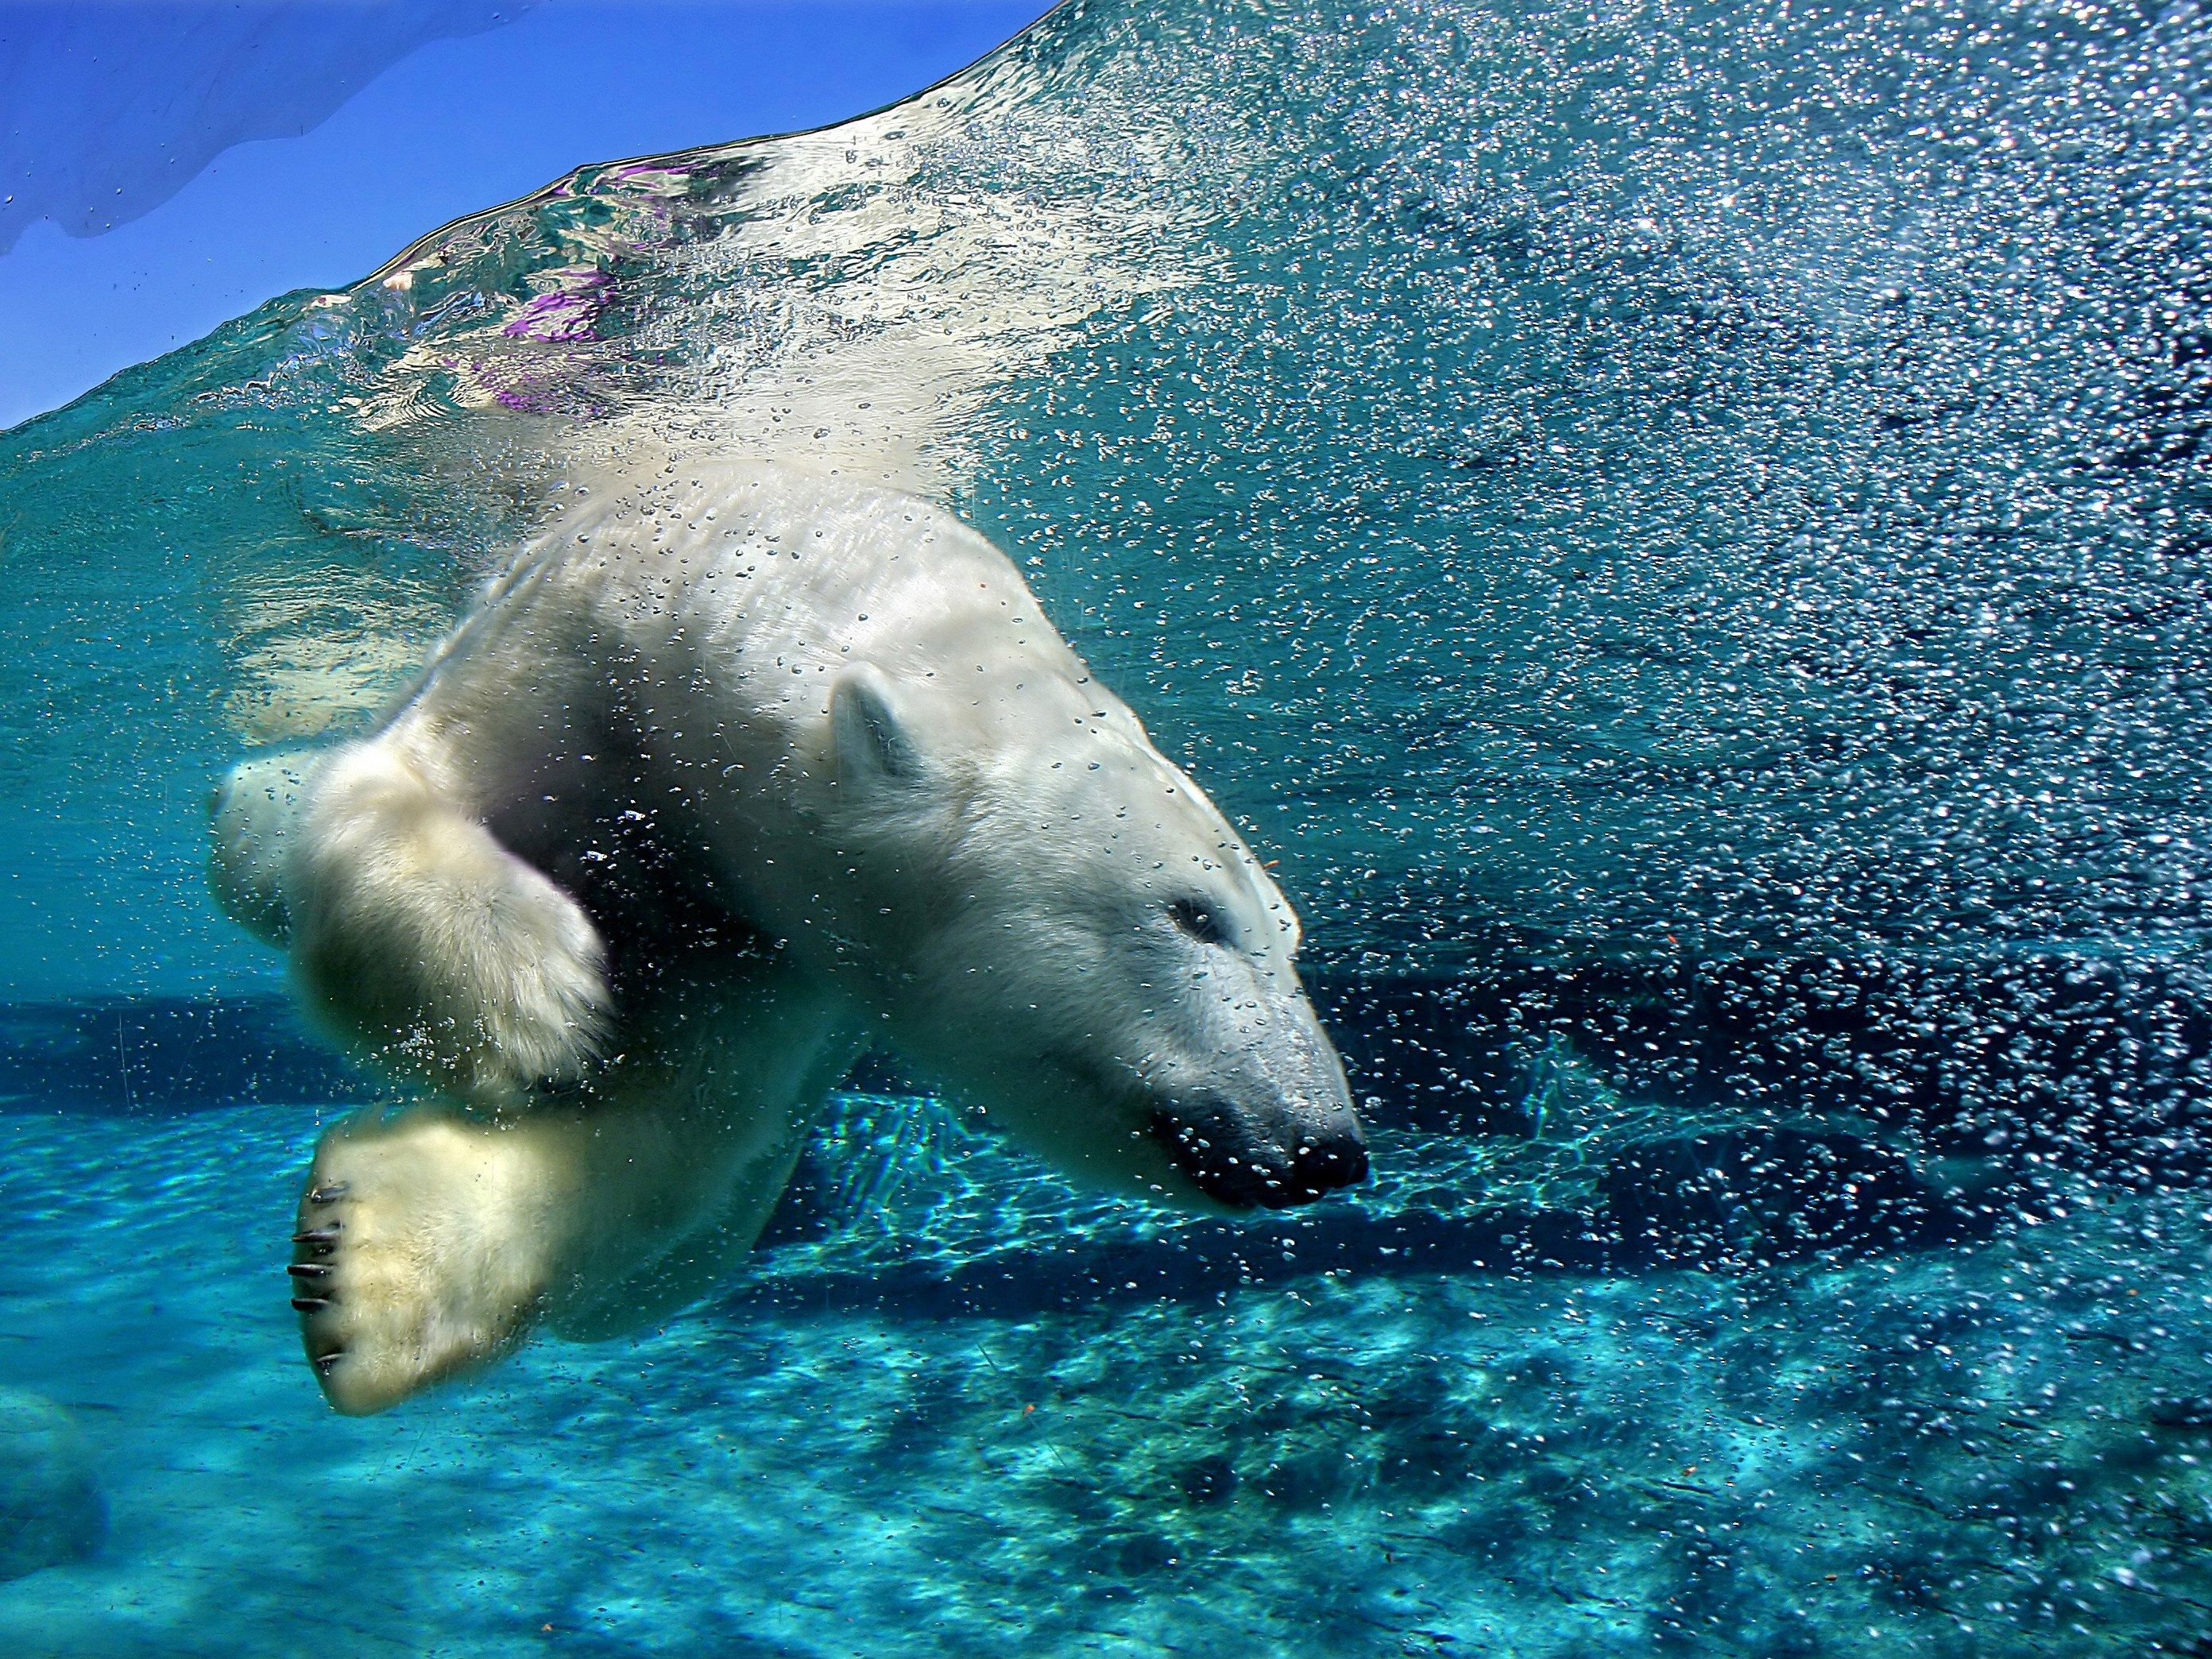 6. You Can Swim with a Polar Bear